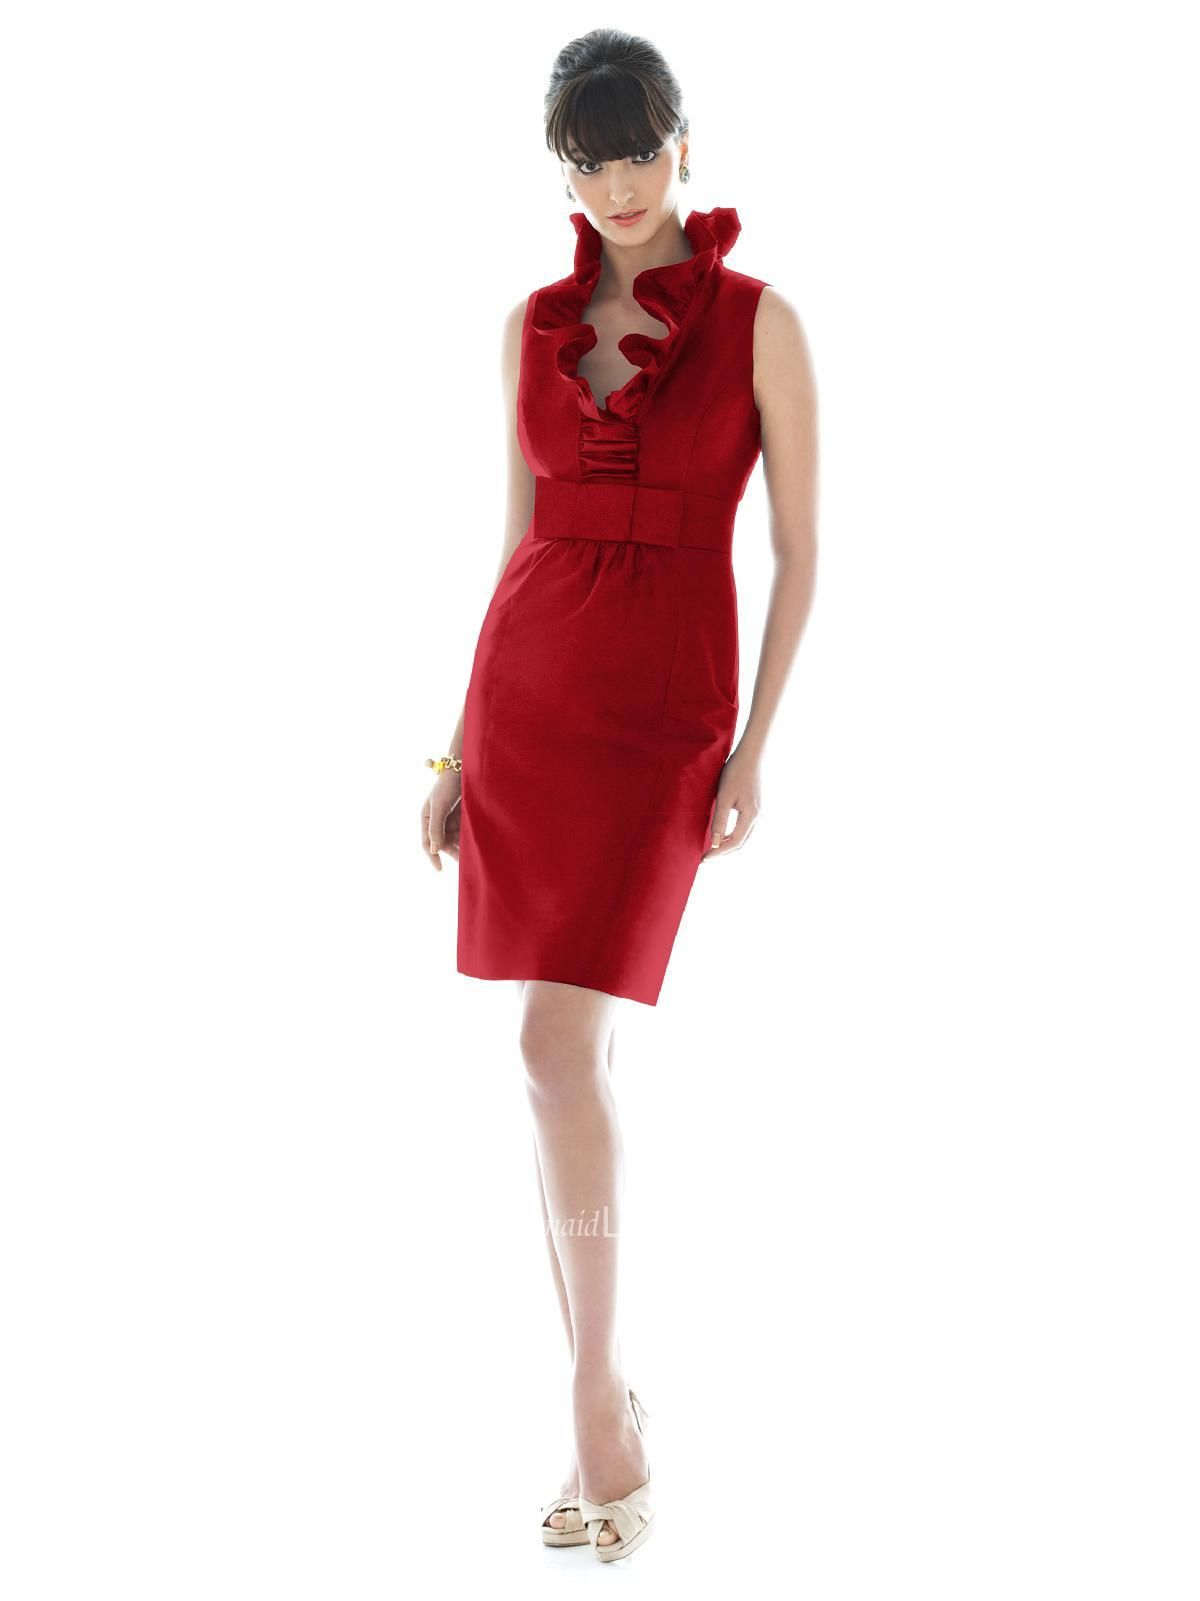 Short red bridesmaid dresses with a ruffle collar sleeveless short red bridesmaid dresses with a ruffle collar sleeveless garnet short satin bridesmaid dress with ombrellifo Gallery